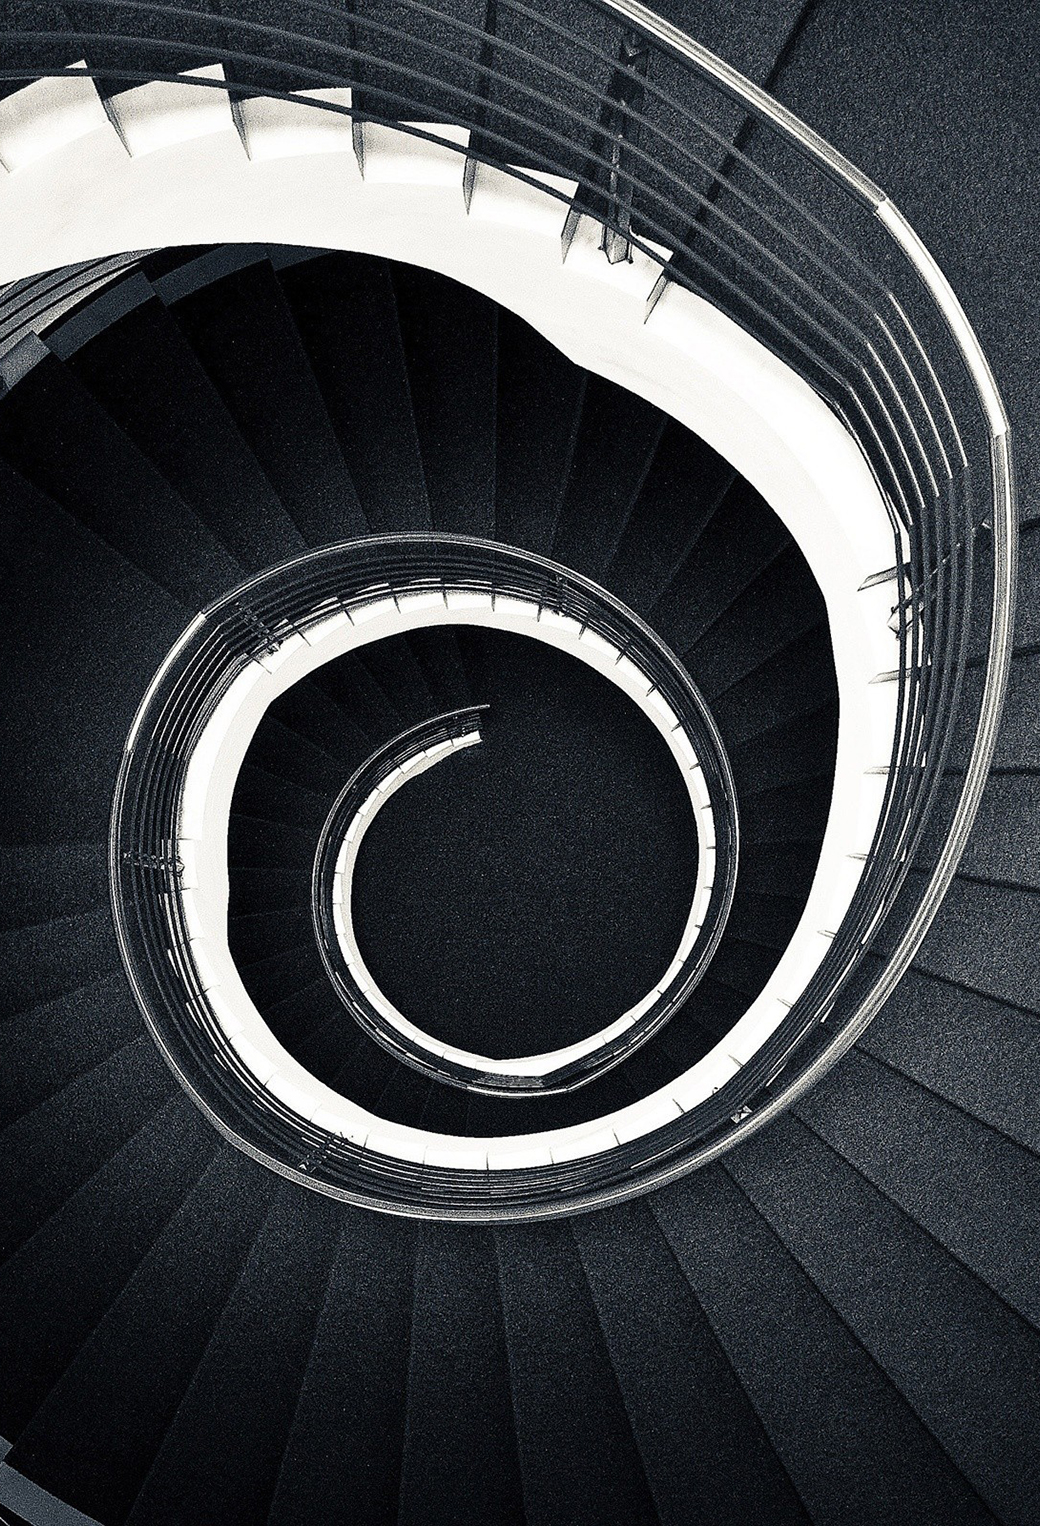 Black and white Spiral 3Wallappers iPhone Parallax Black and White Spiral